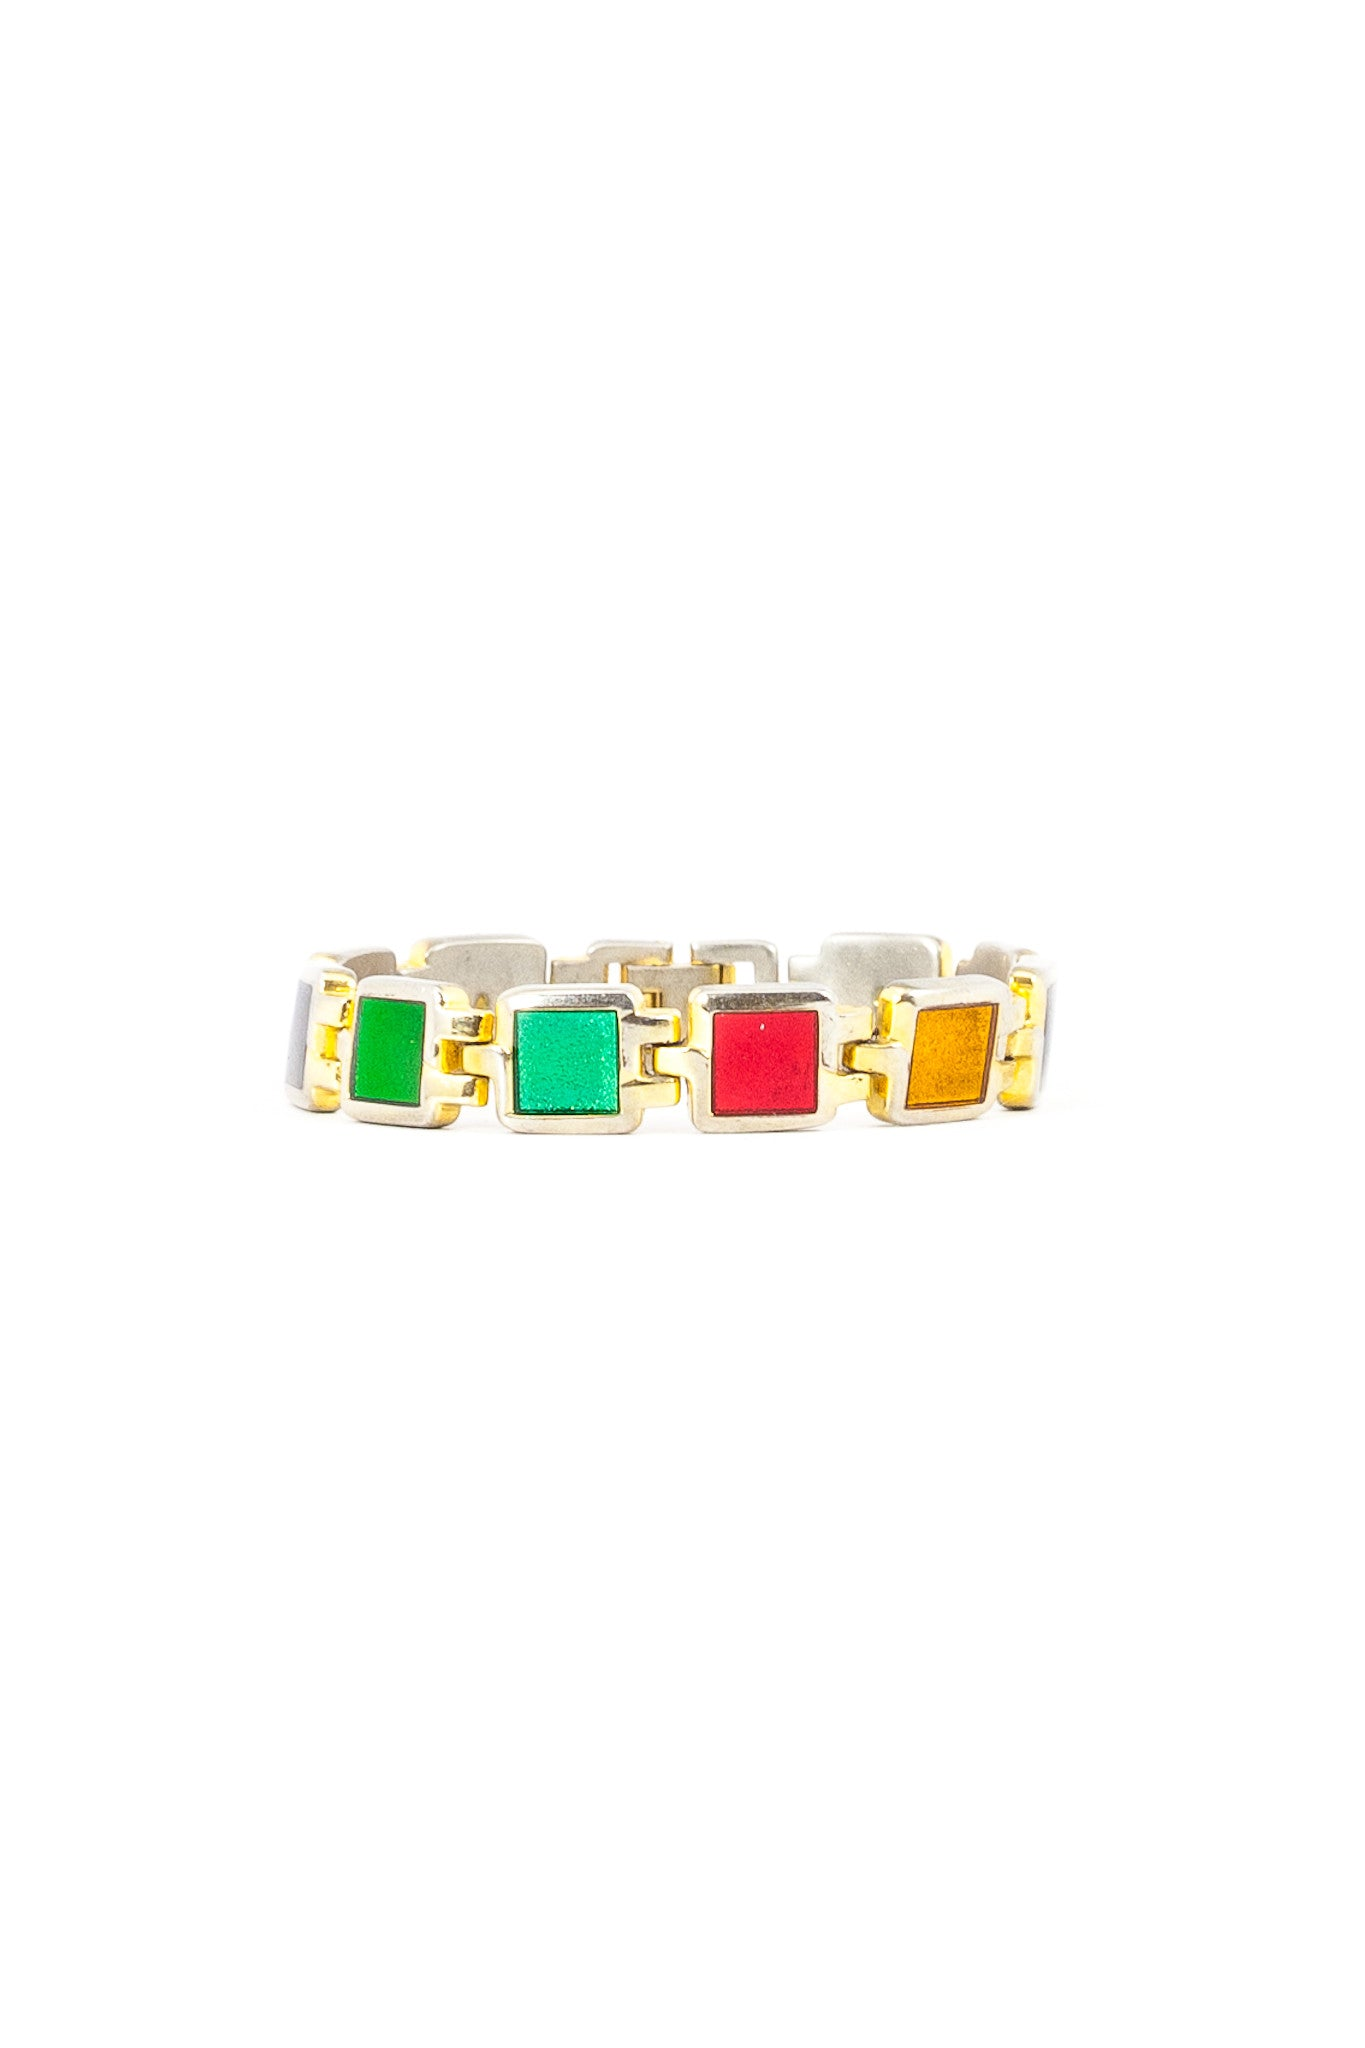 80's__Vintage__Colored Jewel Link Bracelet